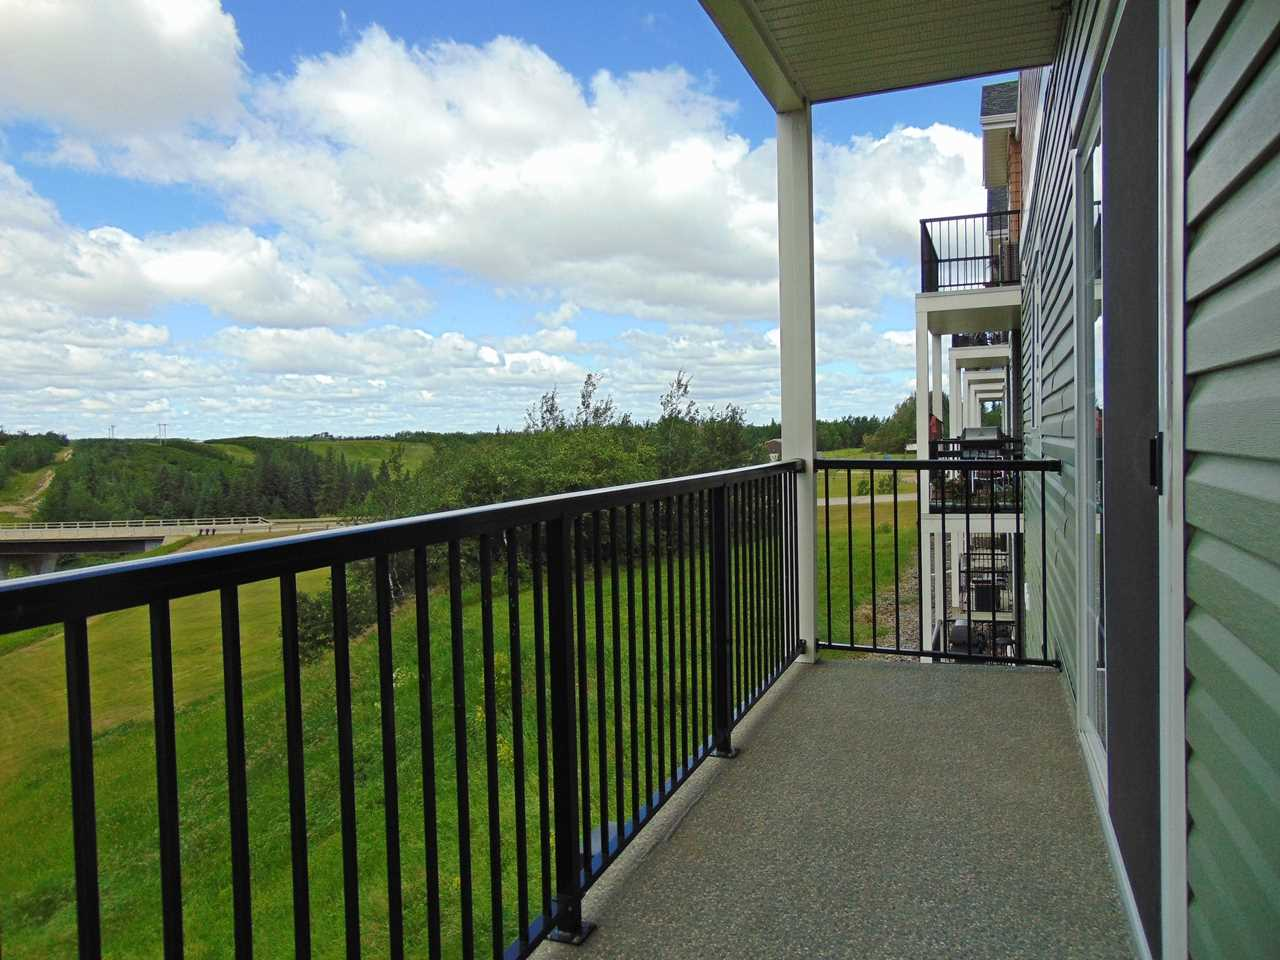 Photo 24: 203 4922 52 Street: Gibbons Condo for sale : MLS® # E4071334